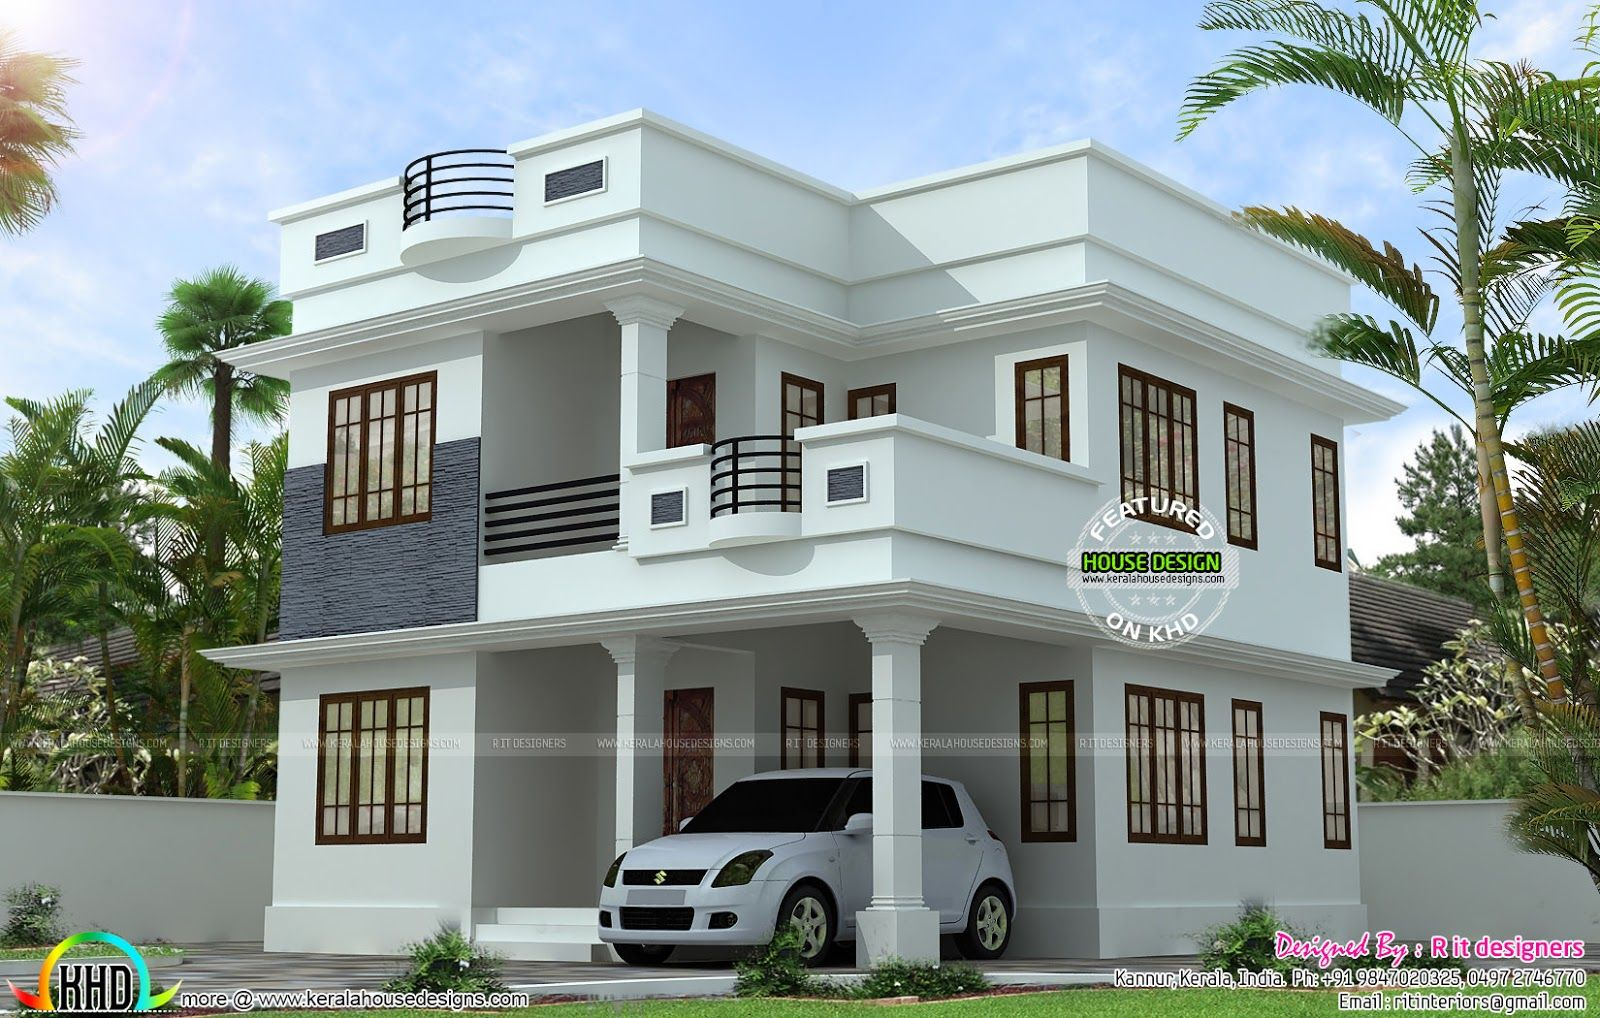 House Desings Beauteous Picture Gallery Of Kerala Houses  House Plans And Ideas Inspiration